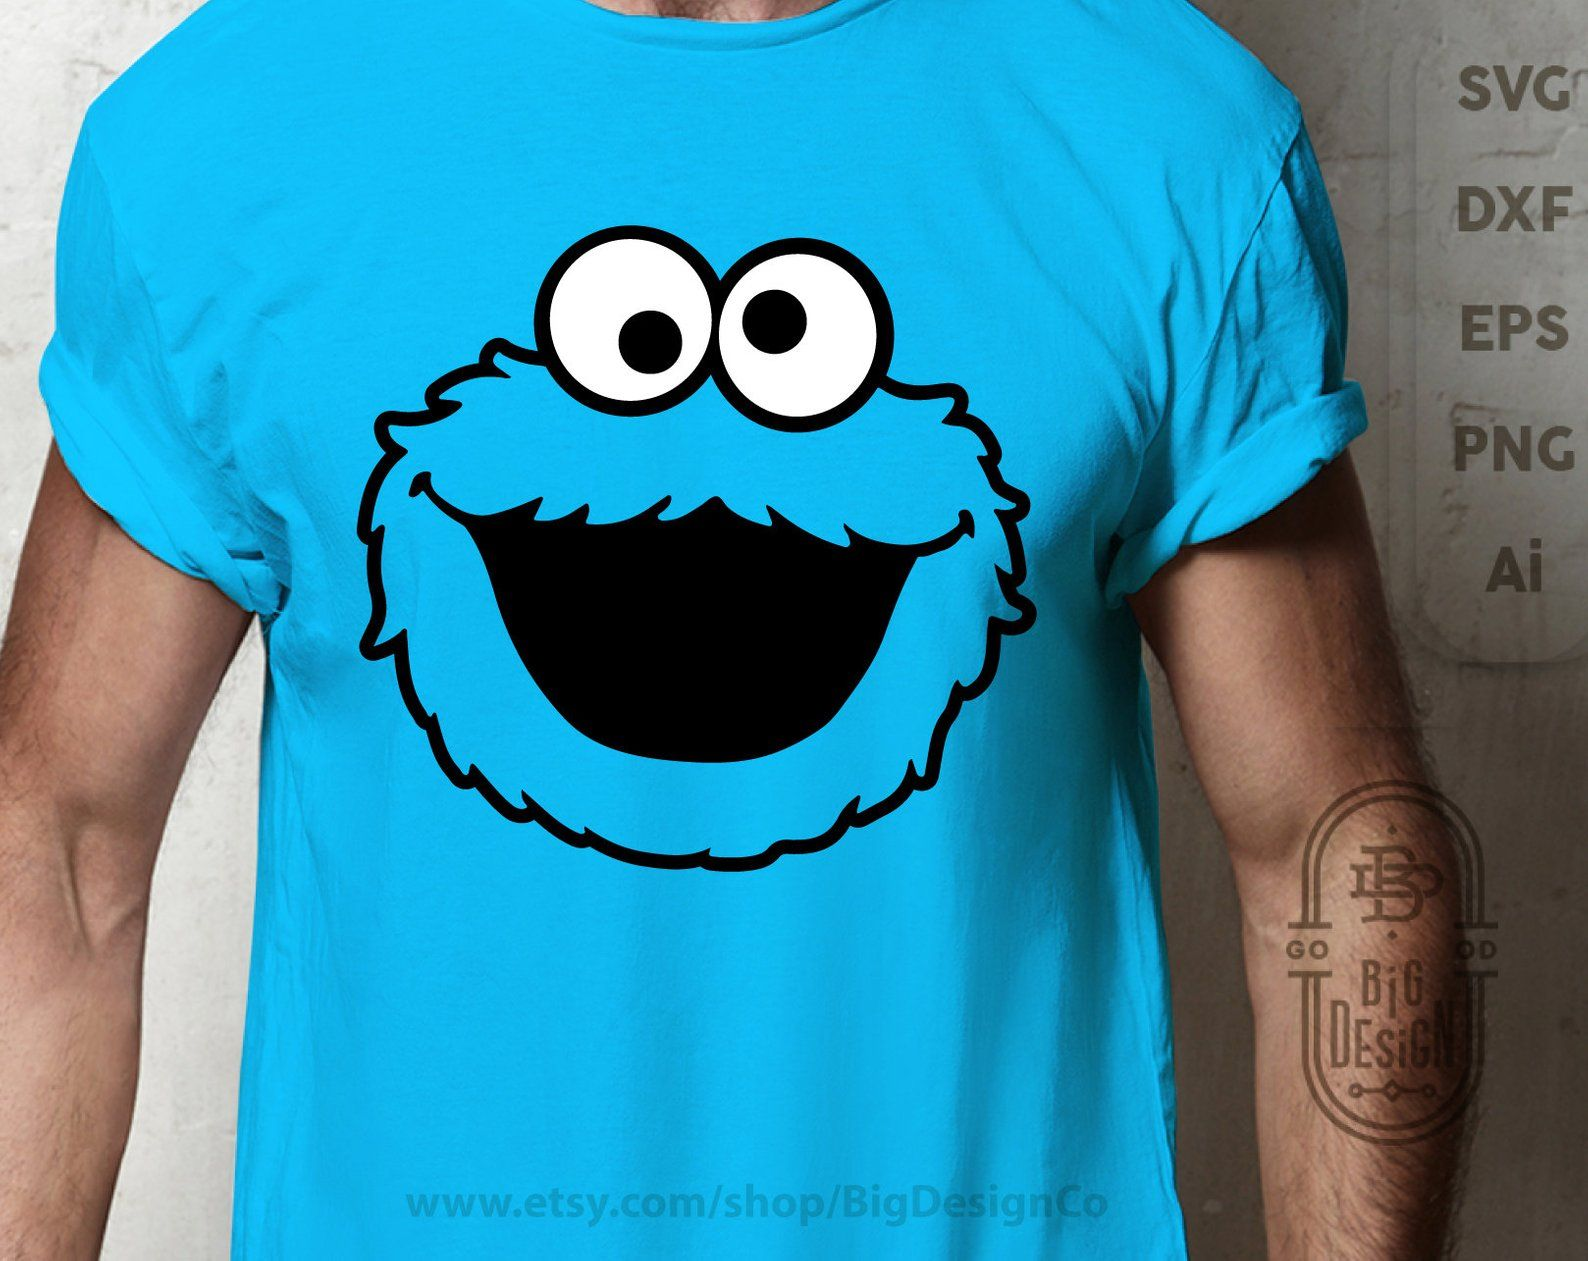 4pc Cookie Monster Svg Cookie Monster Party Sesame Street Svg Cookie Monster Head Svg C Elmo Birthday Party Cookie Monster Party Birthday Party Decorations